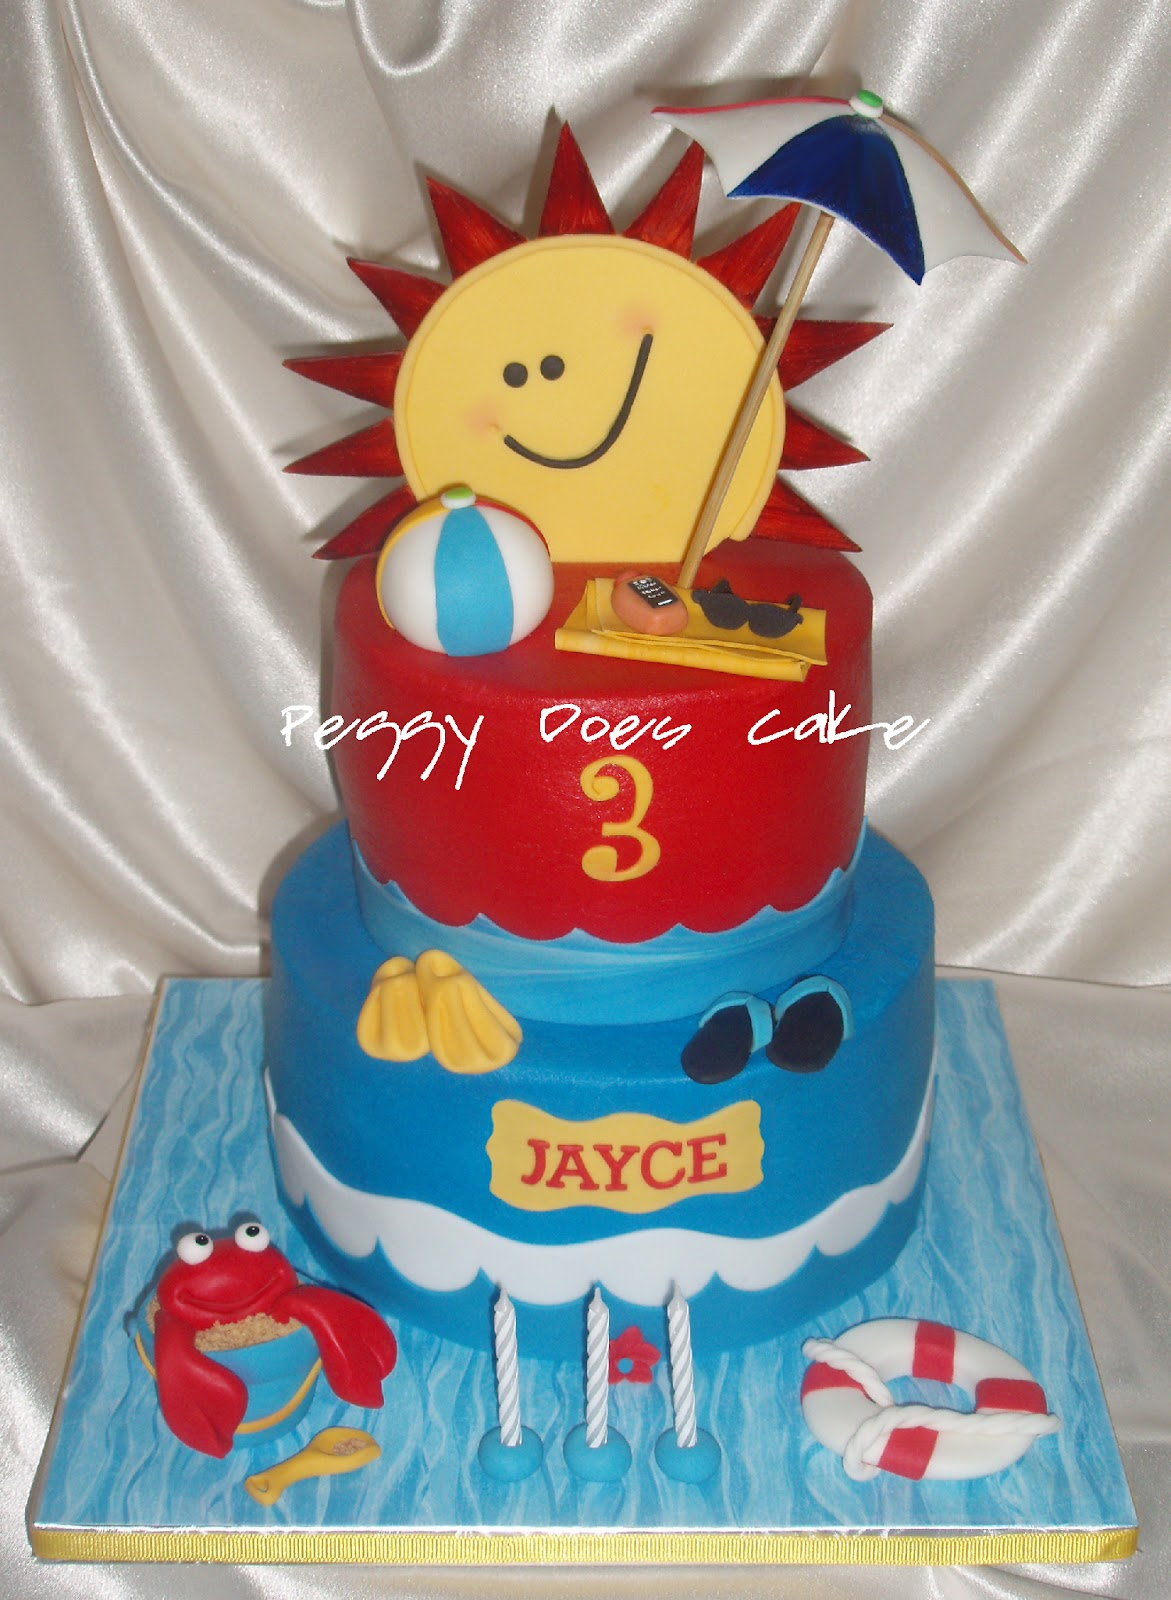 Peggy Does Cake Cake Update Pool Party Cake For Jayce